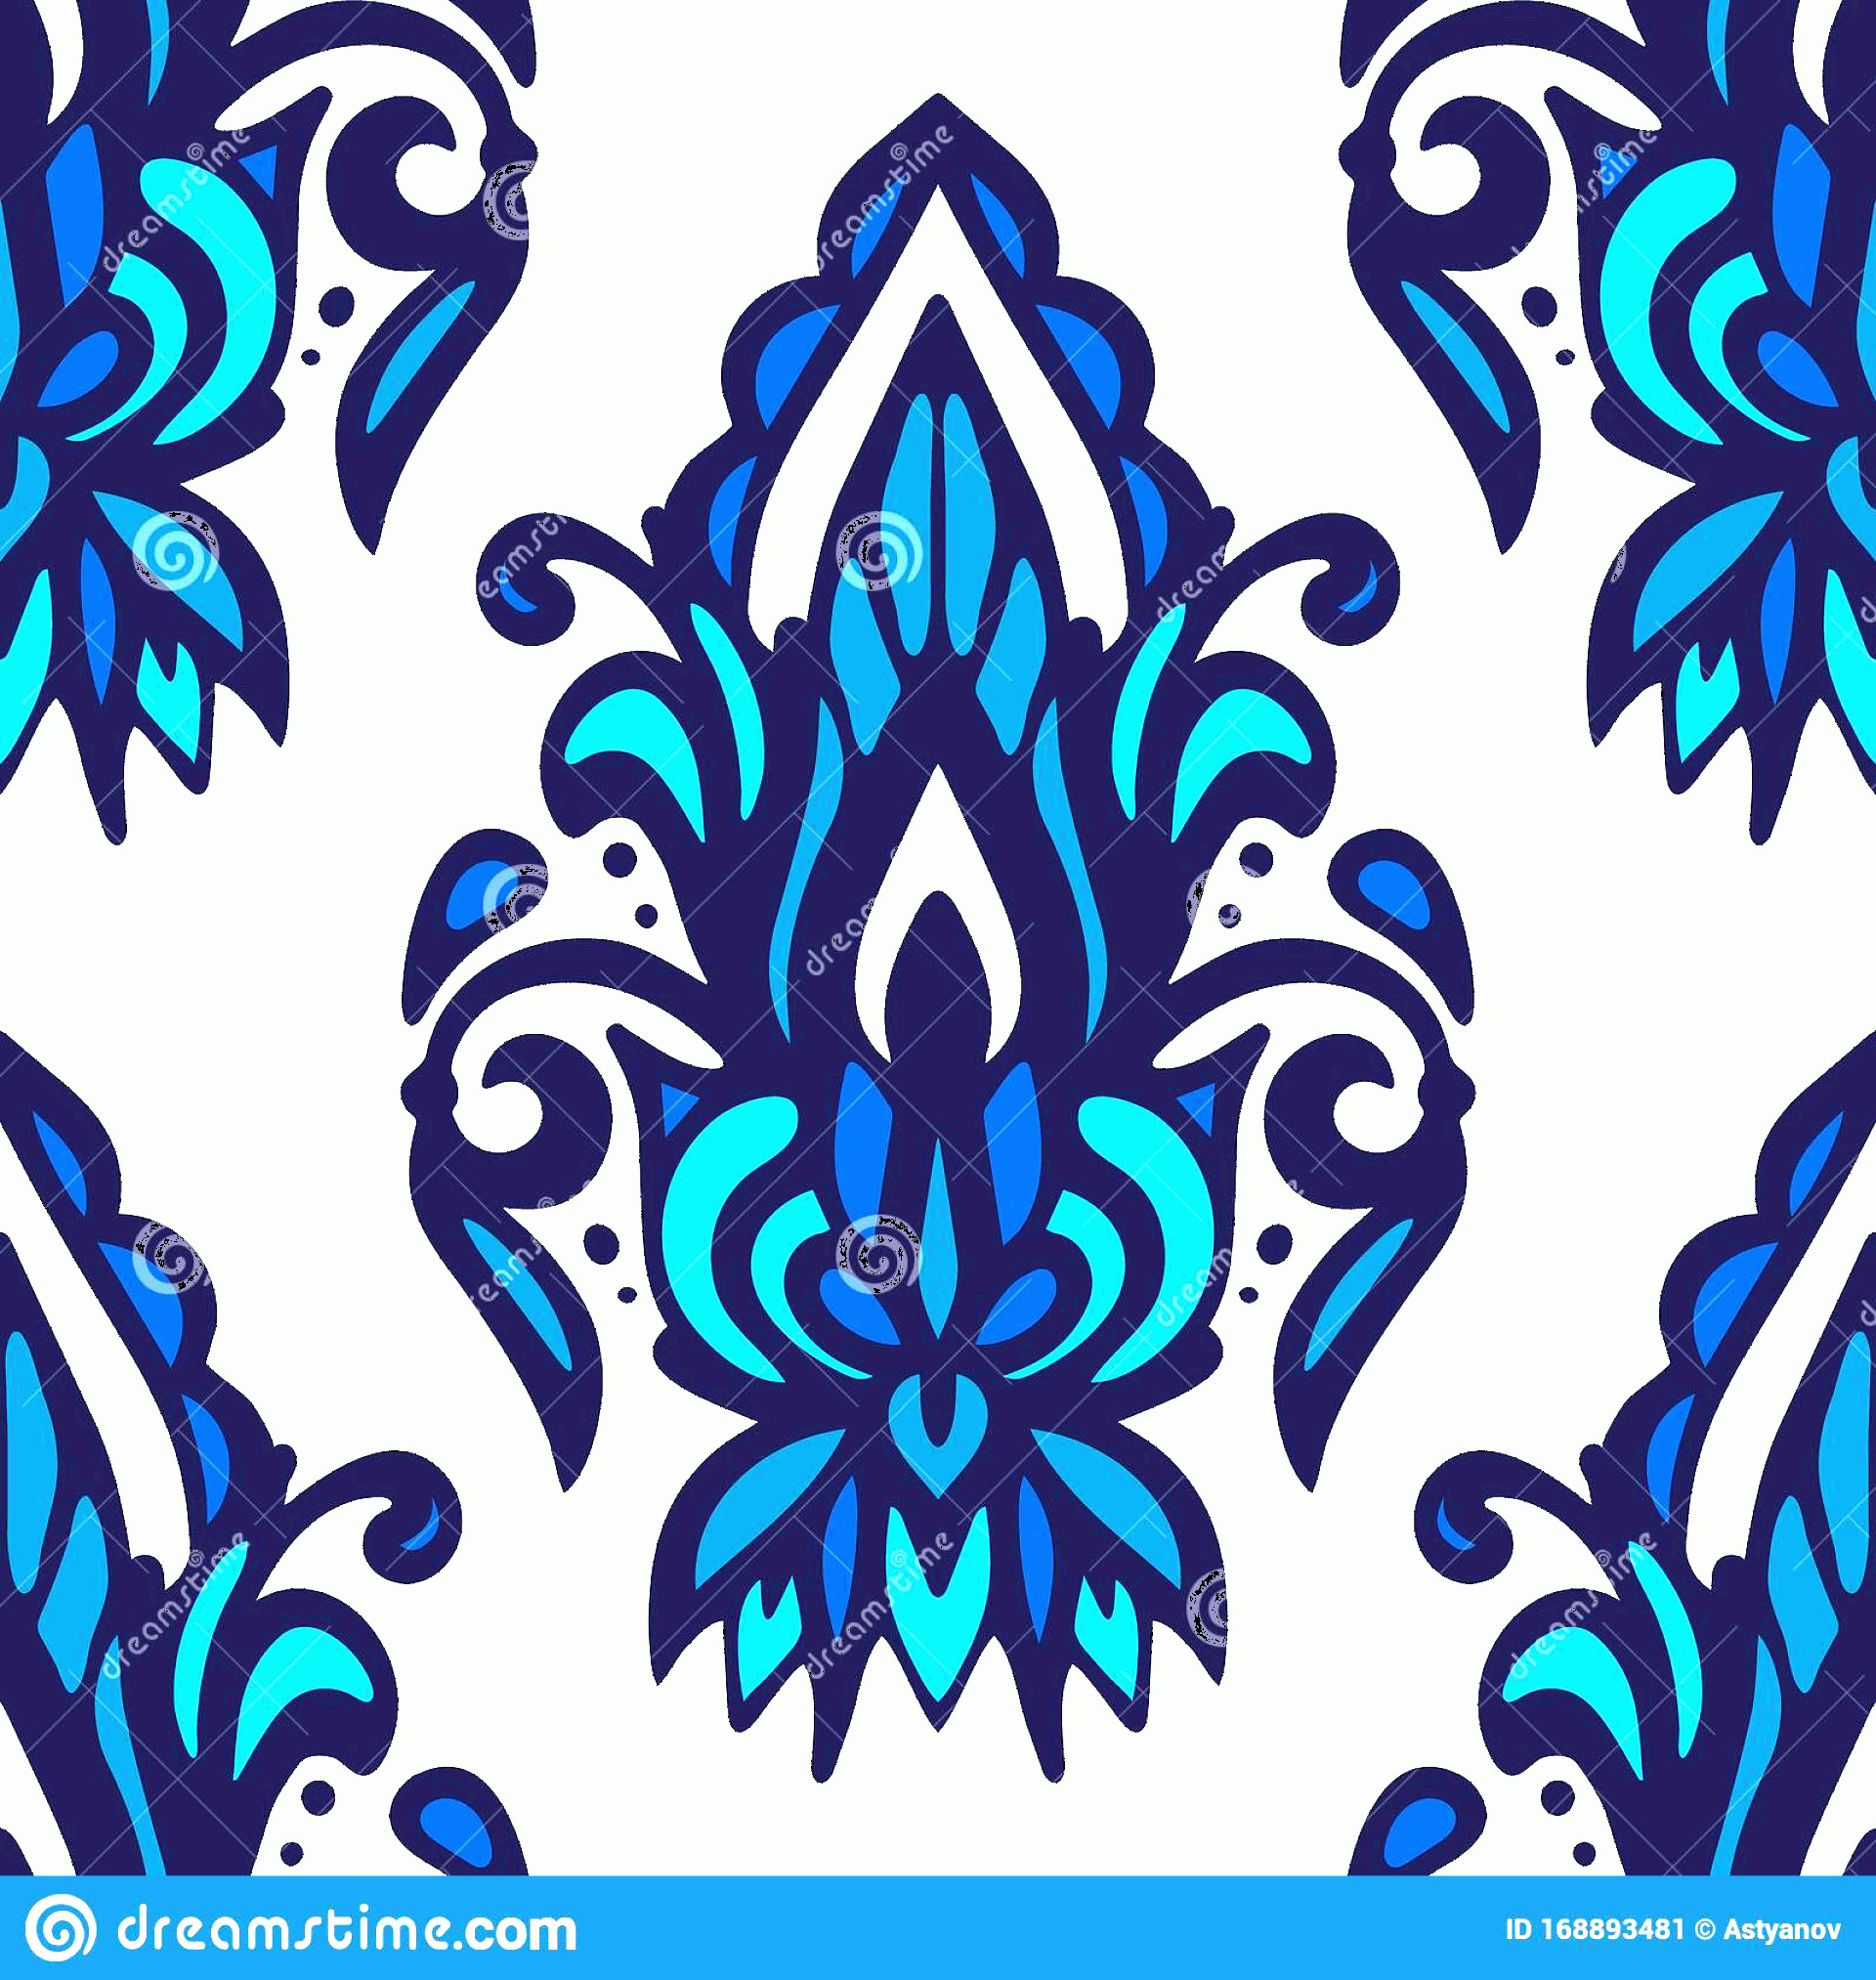 Blue And White Damask Vectors: Damask Flower Vector Seamless Pattern Blue White Tile Flourish Ceramic Arabesque Fabric Image